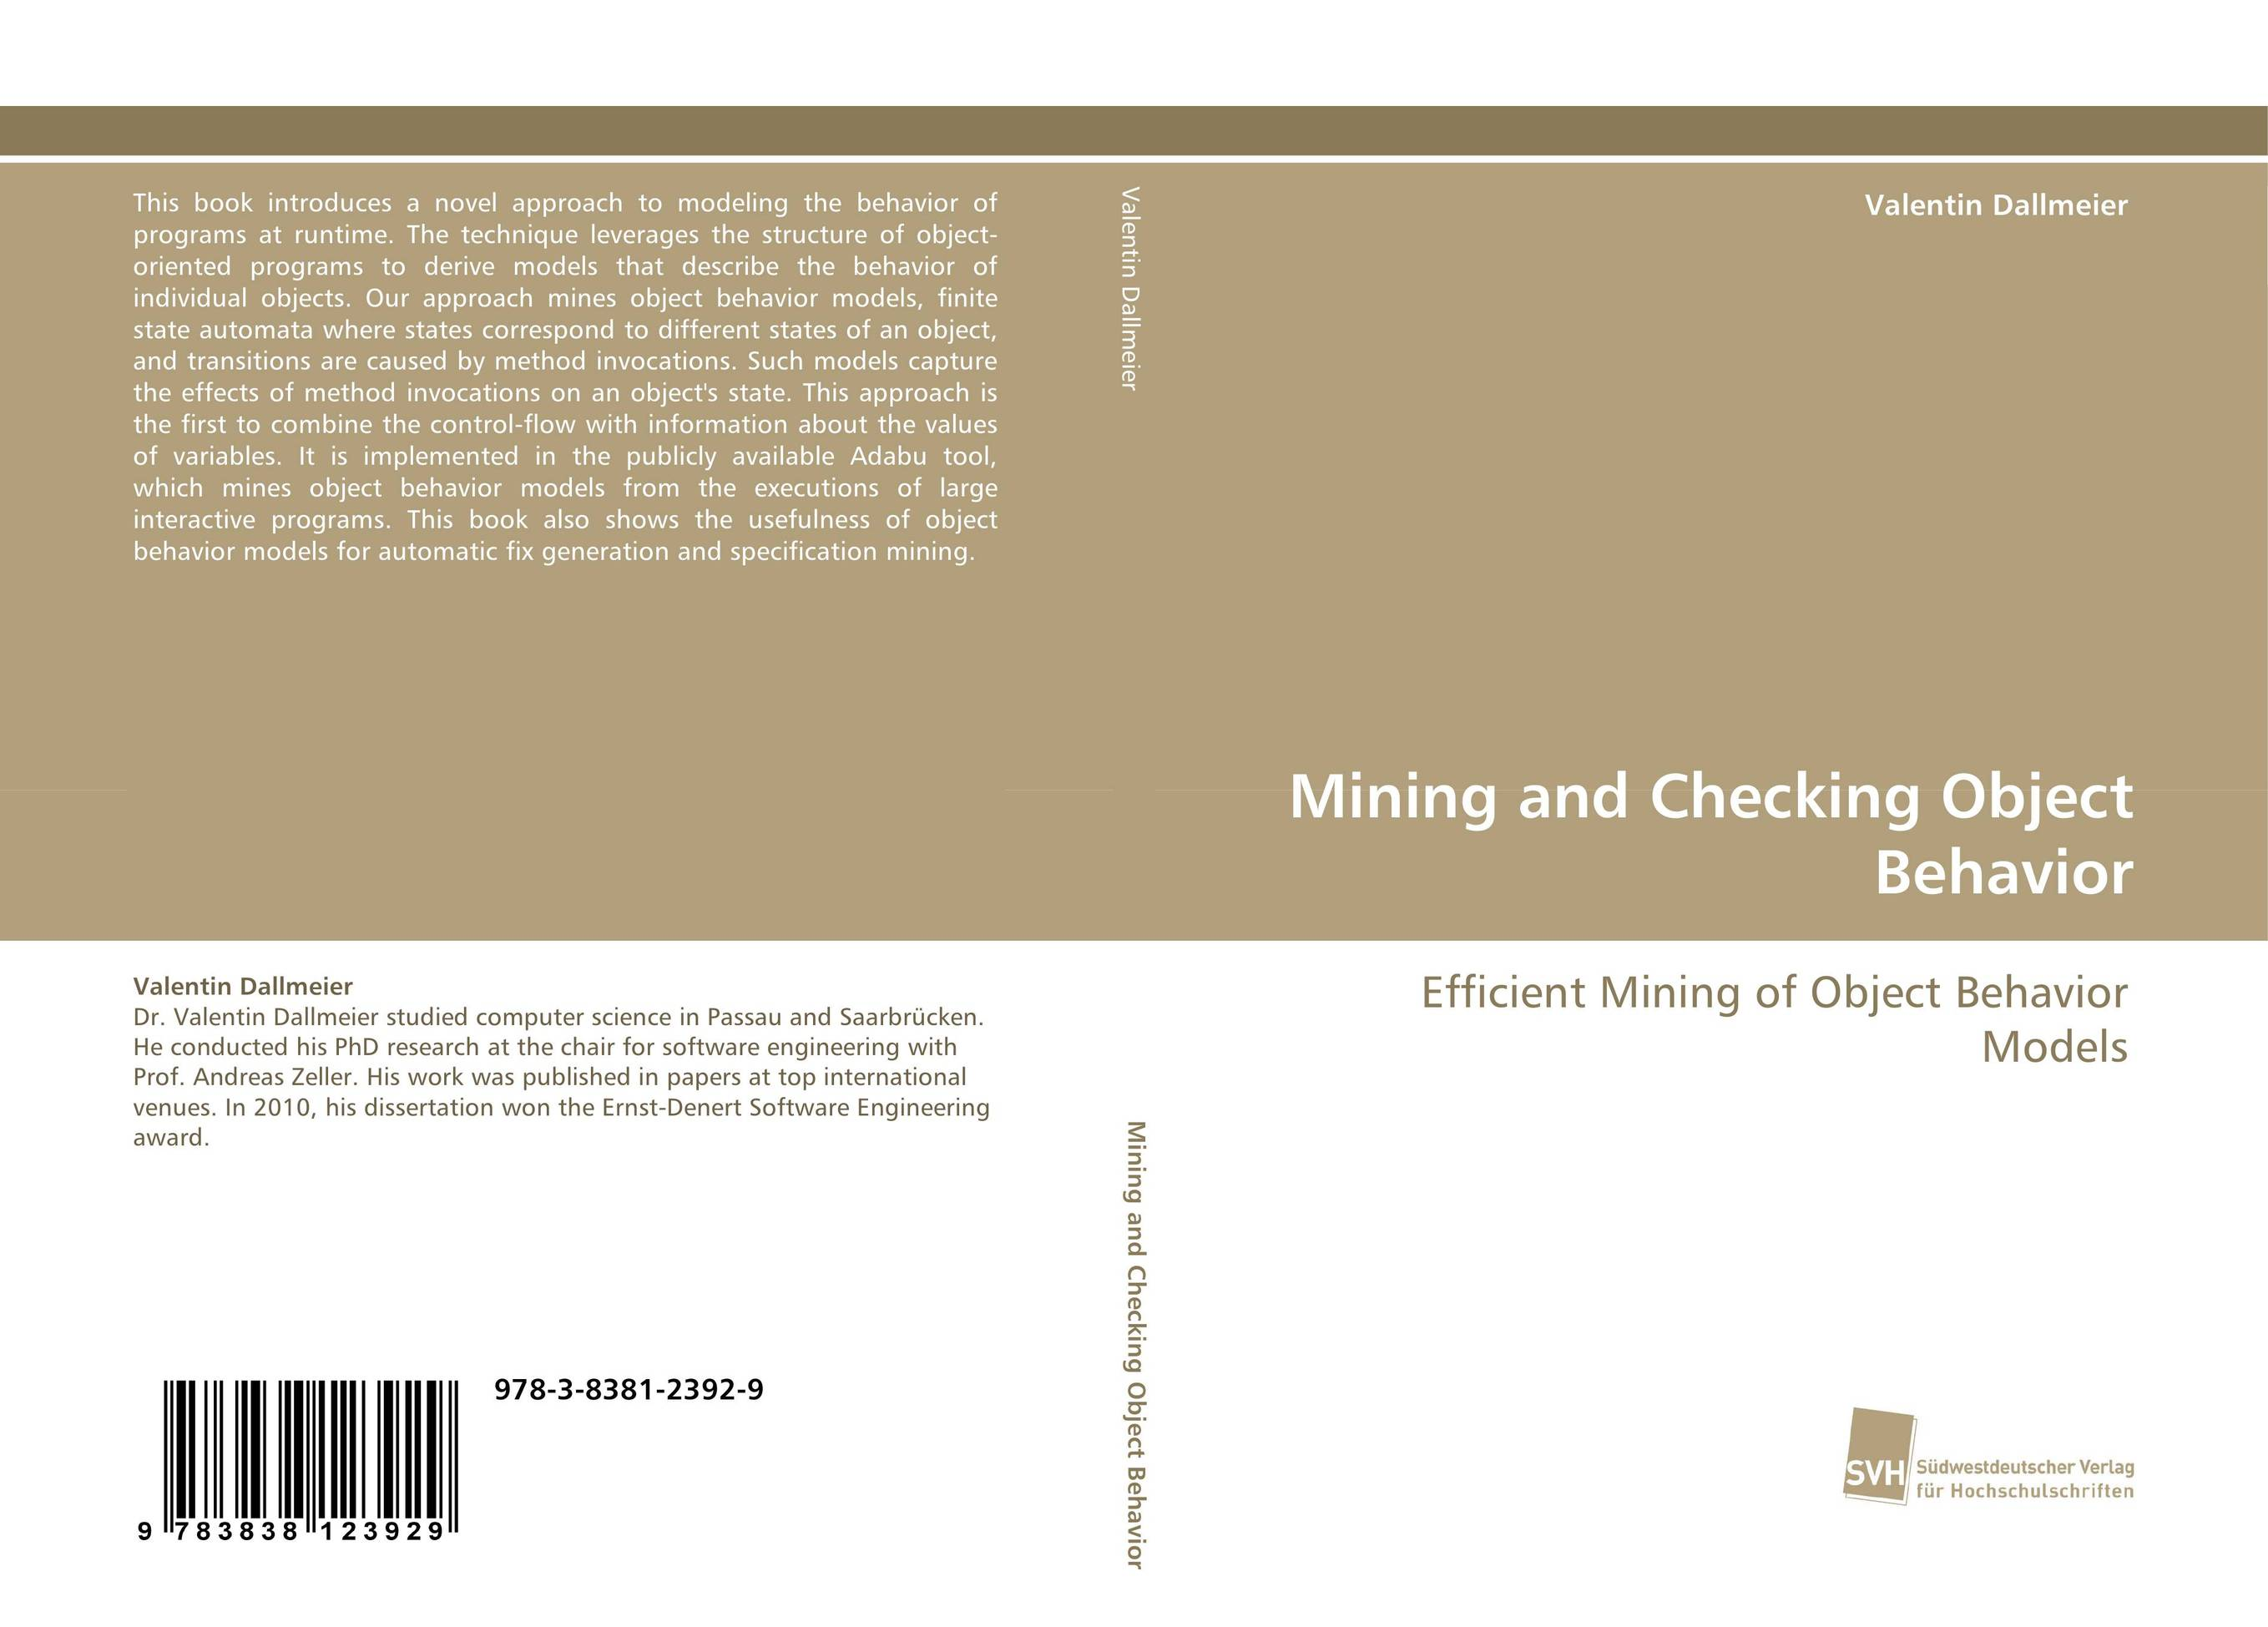 Mining and Checking Object Behavior affair of state an